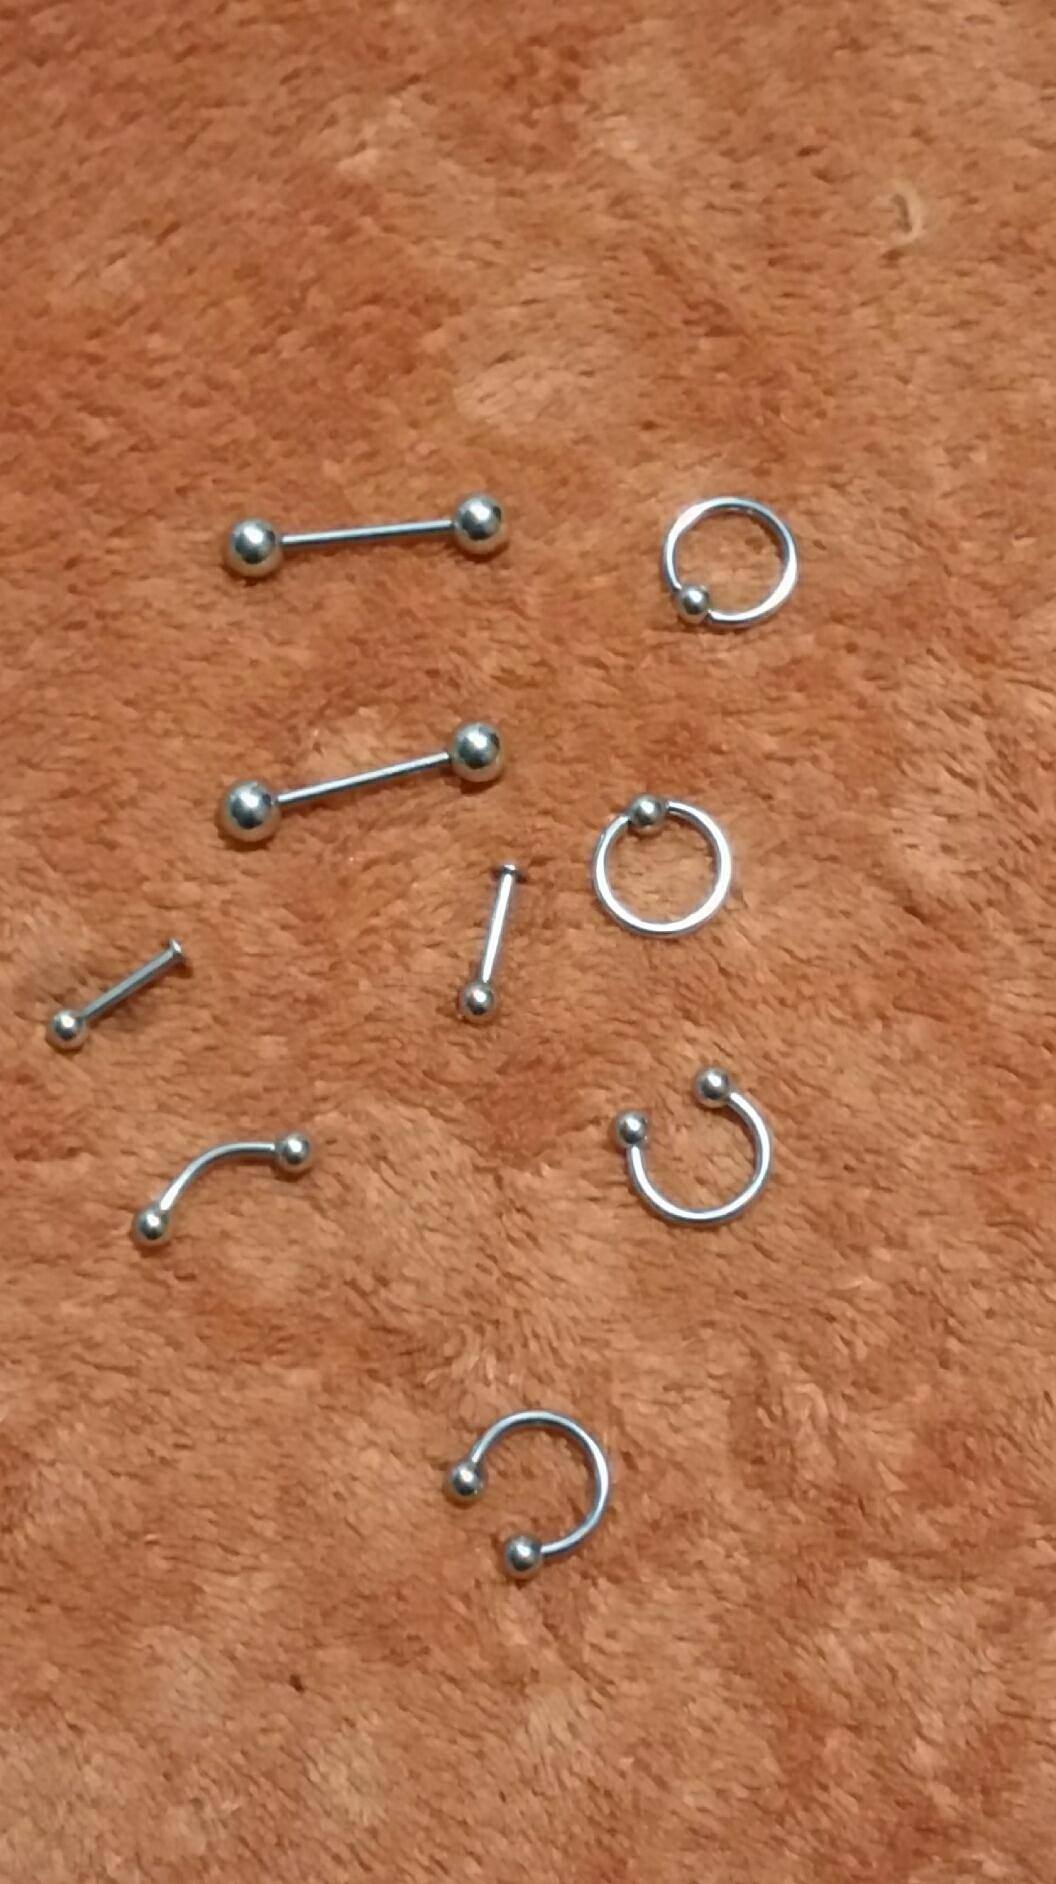 Fantastic piercing kit!  Comes with five 14 gauge needles for piercing & 10 pieces of body jewelry to start you out with.  100% safe, sterile, & brand new.